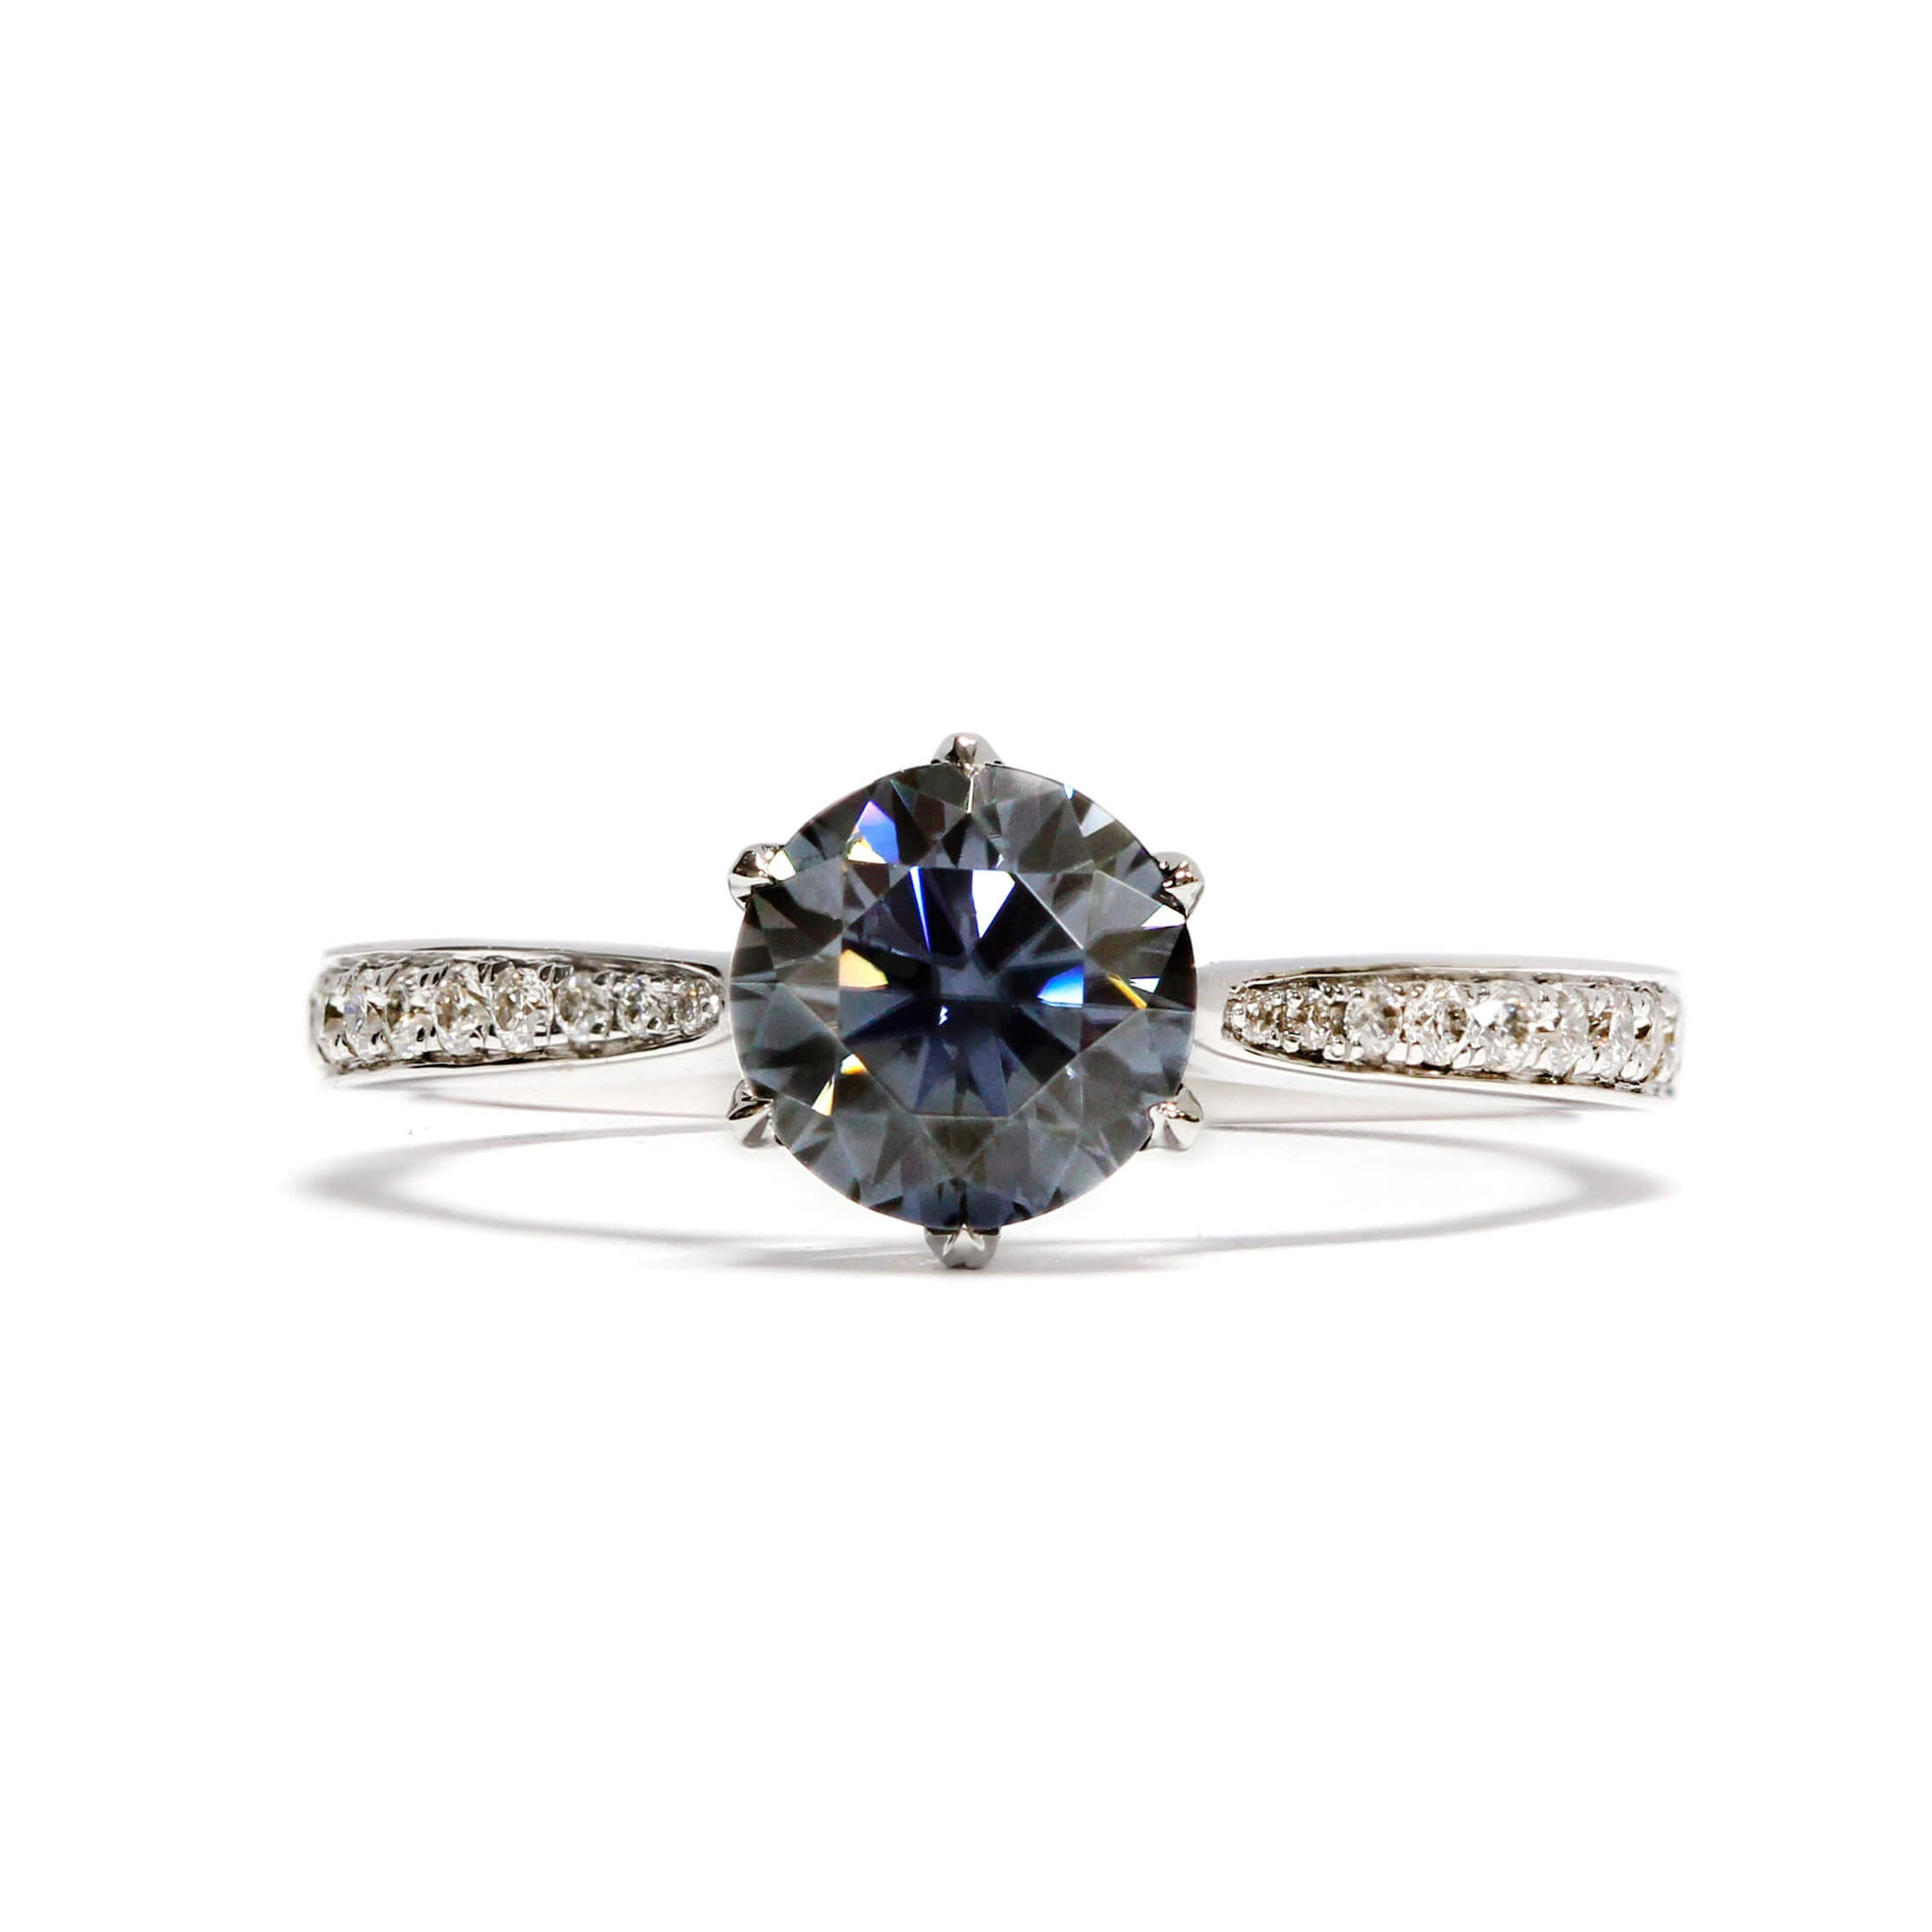 1 Carat Round Grey Moissanite Accent Ring